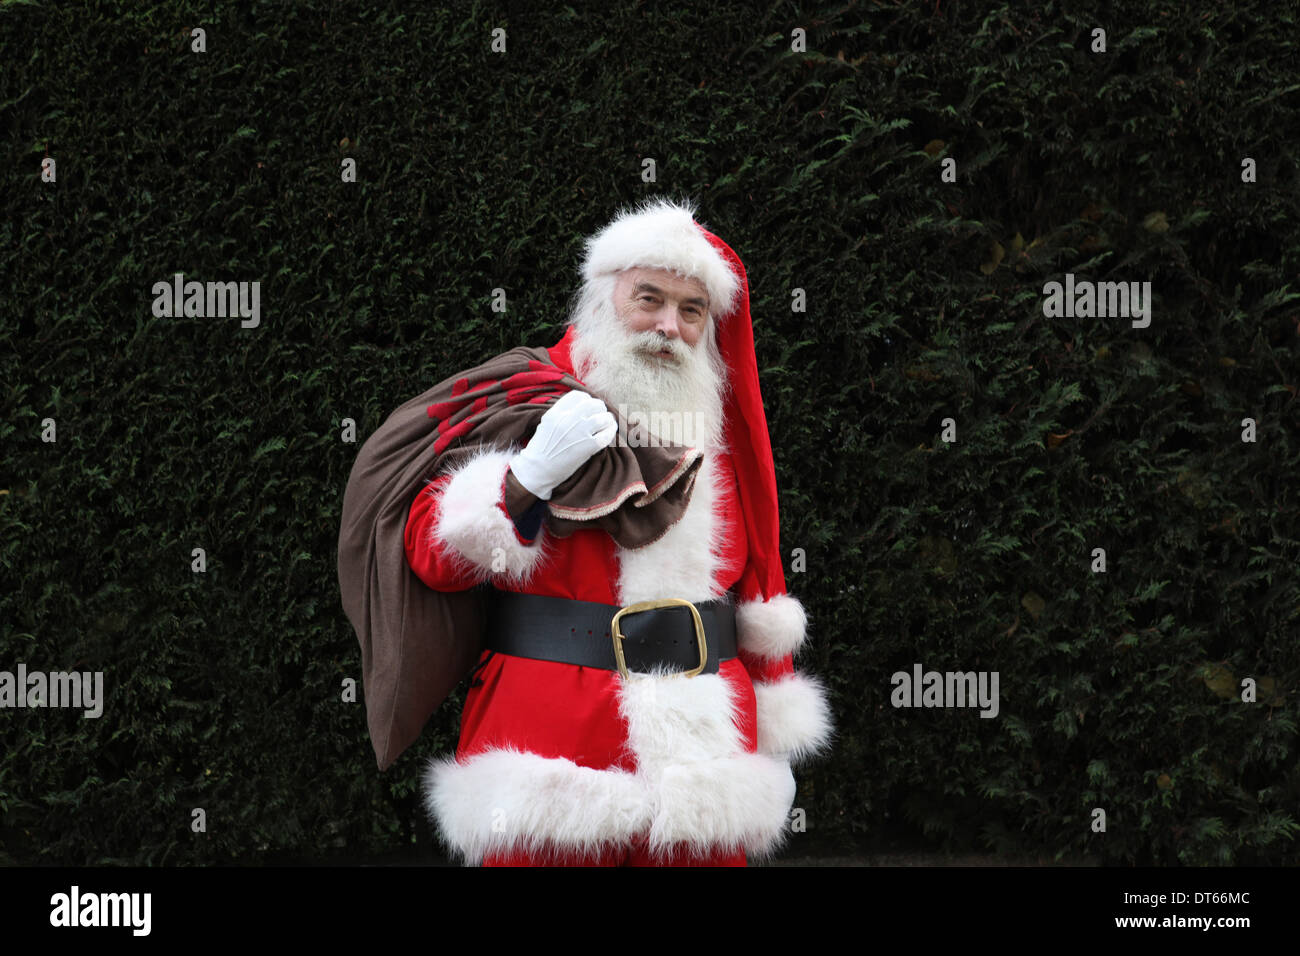 Santa Claus carrying sack over shoulder - Stock Image